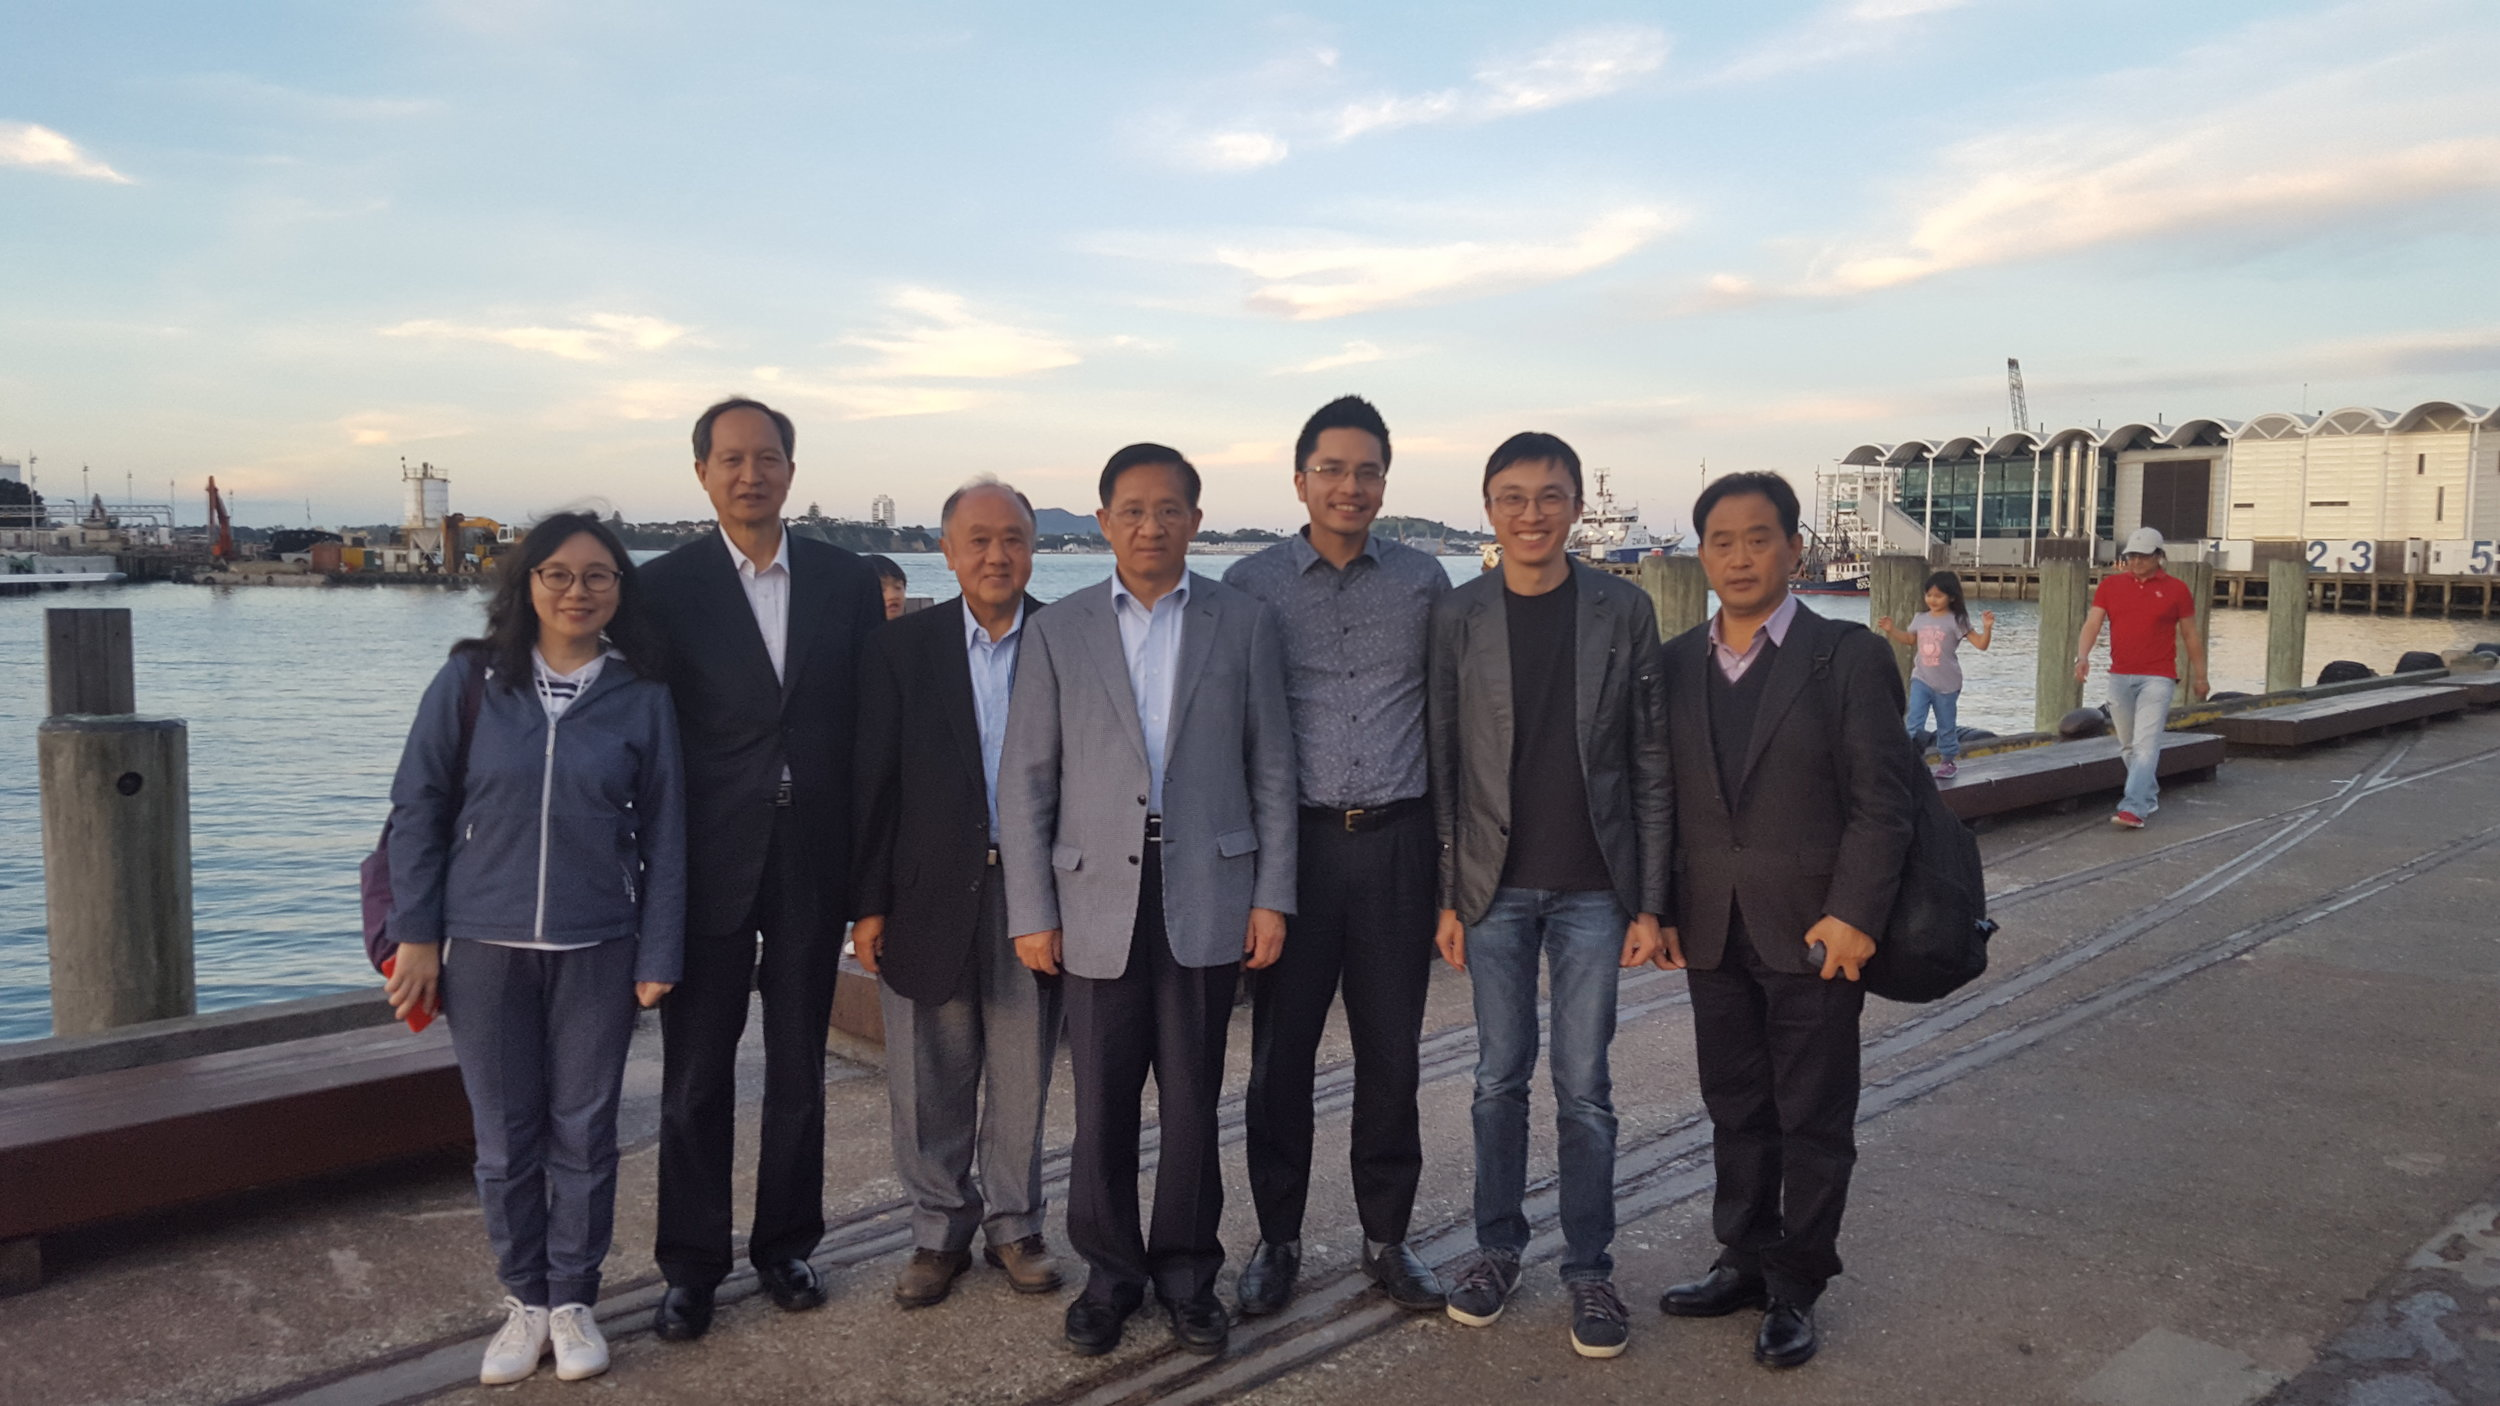 Meeting with World Association of Chinese Doctors - Sun 05 May 2019Lantern Sea, Wynyard Quarter